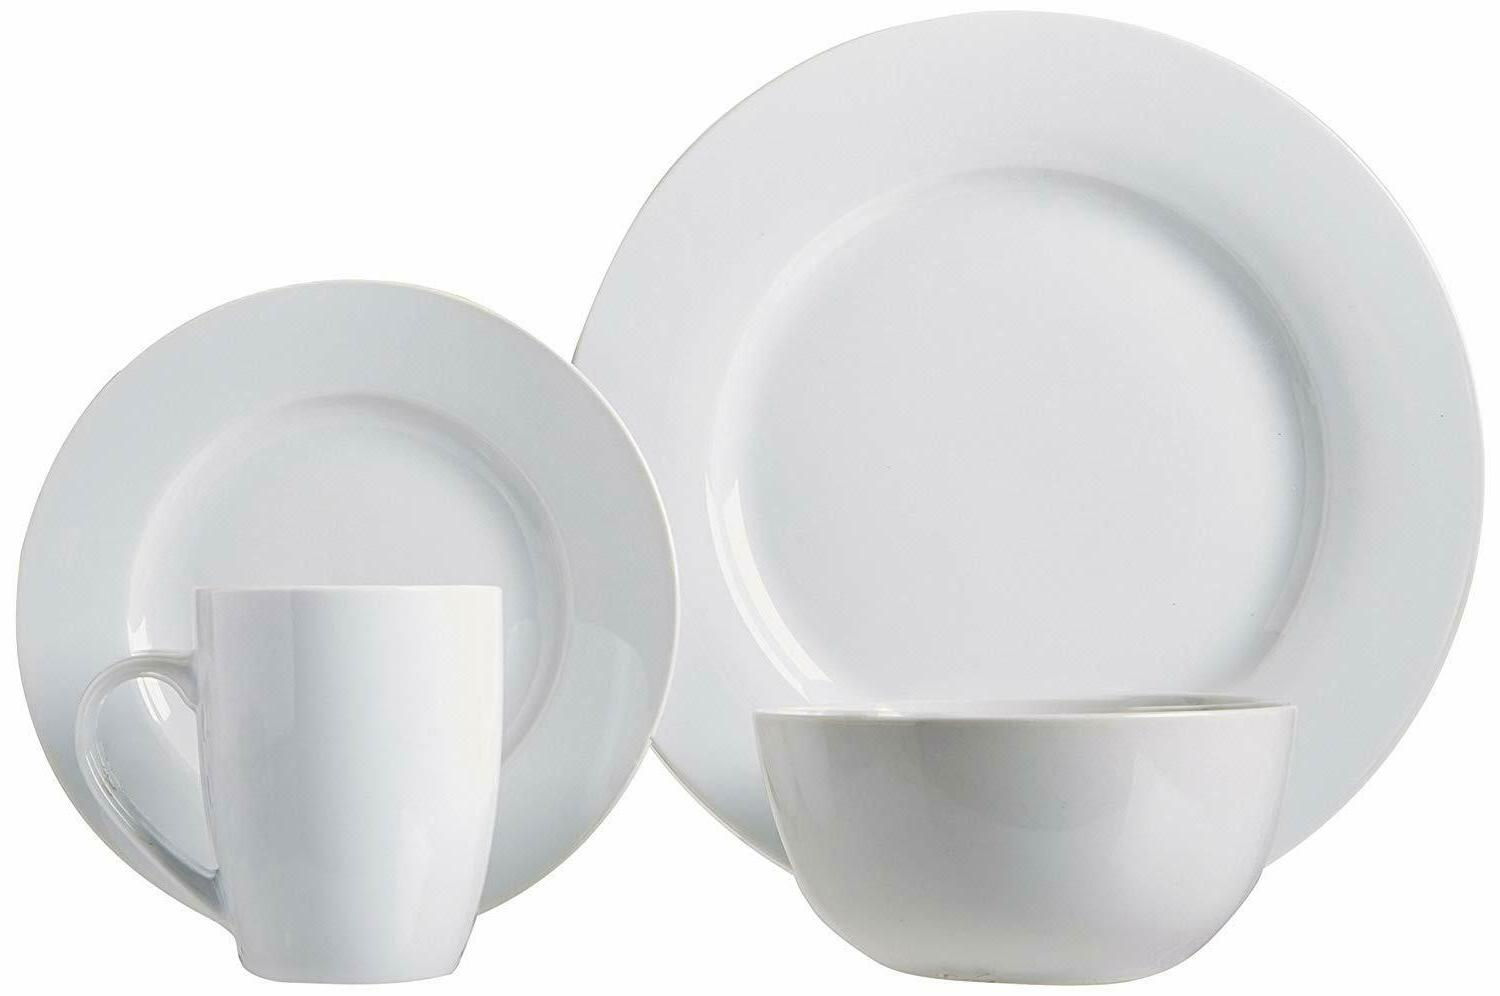 16-Piece Dinnerware Set, for 4